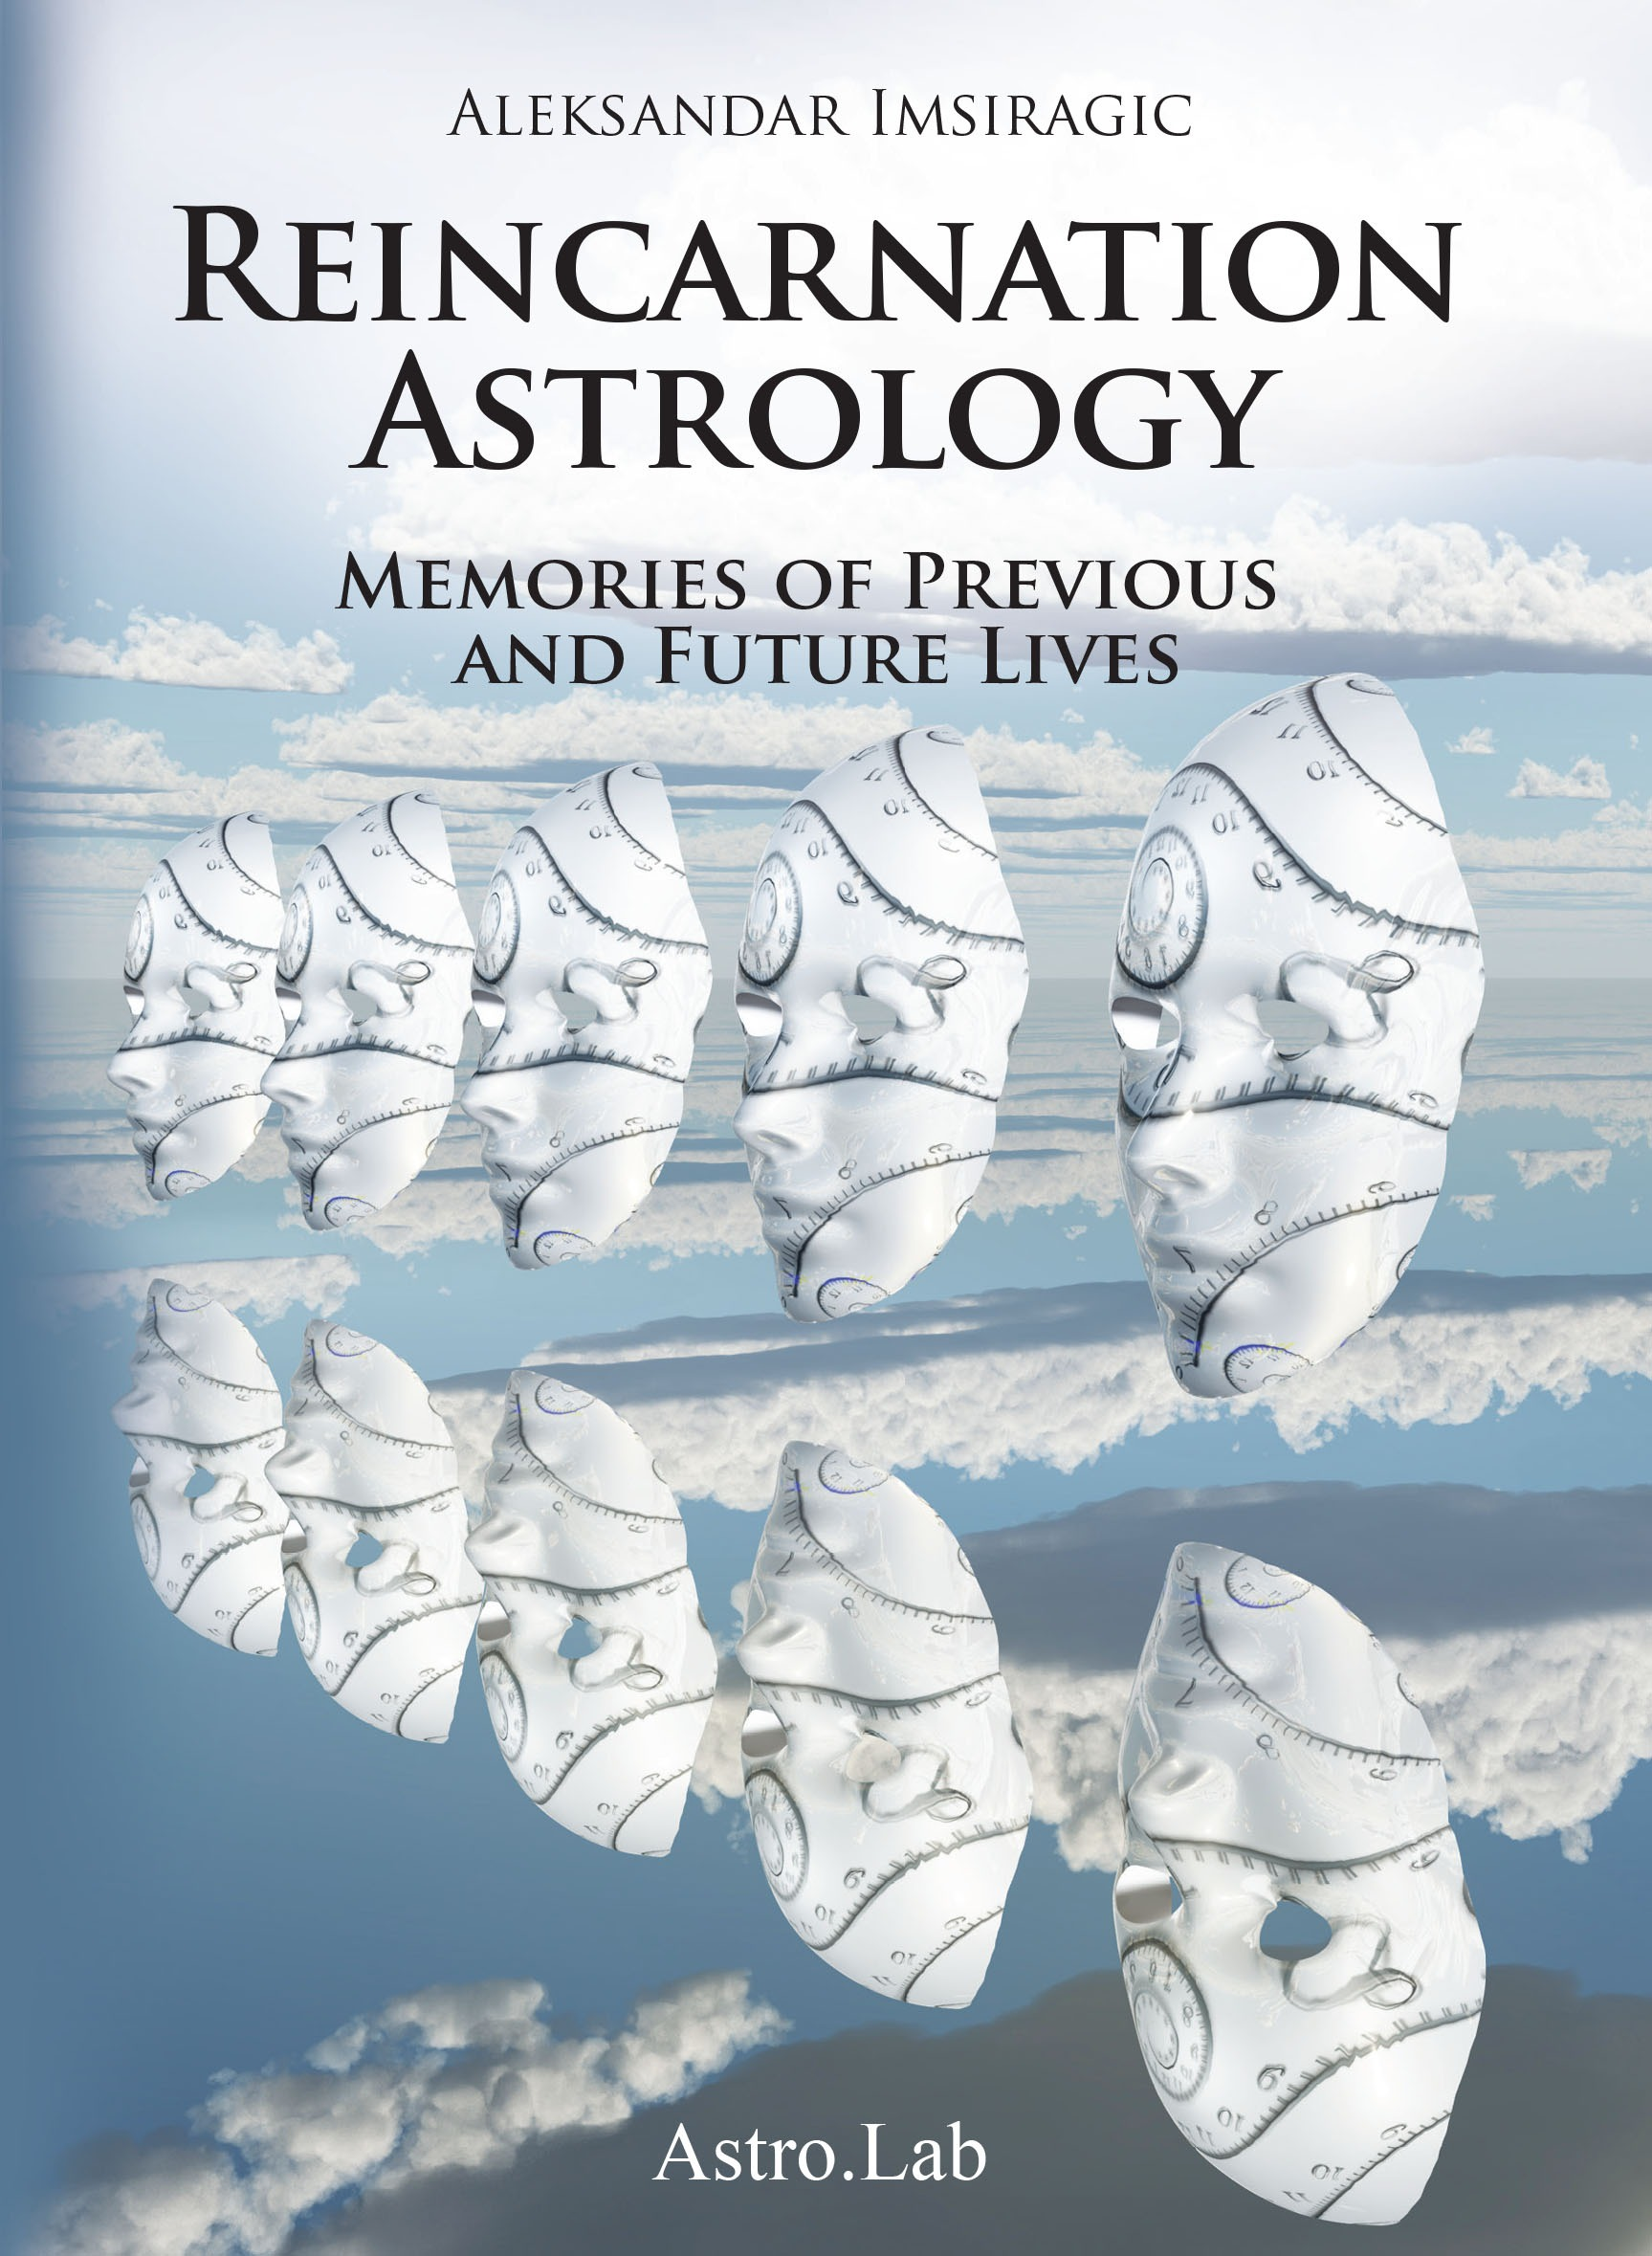 New Book by Aleksandar Imsiragic: REINCARNATION ASTROLOGY